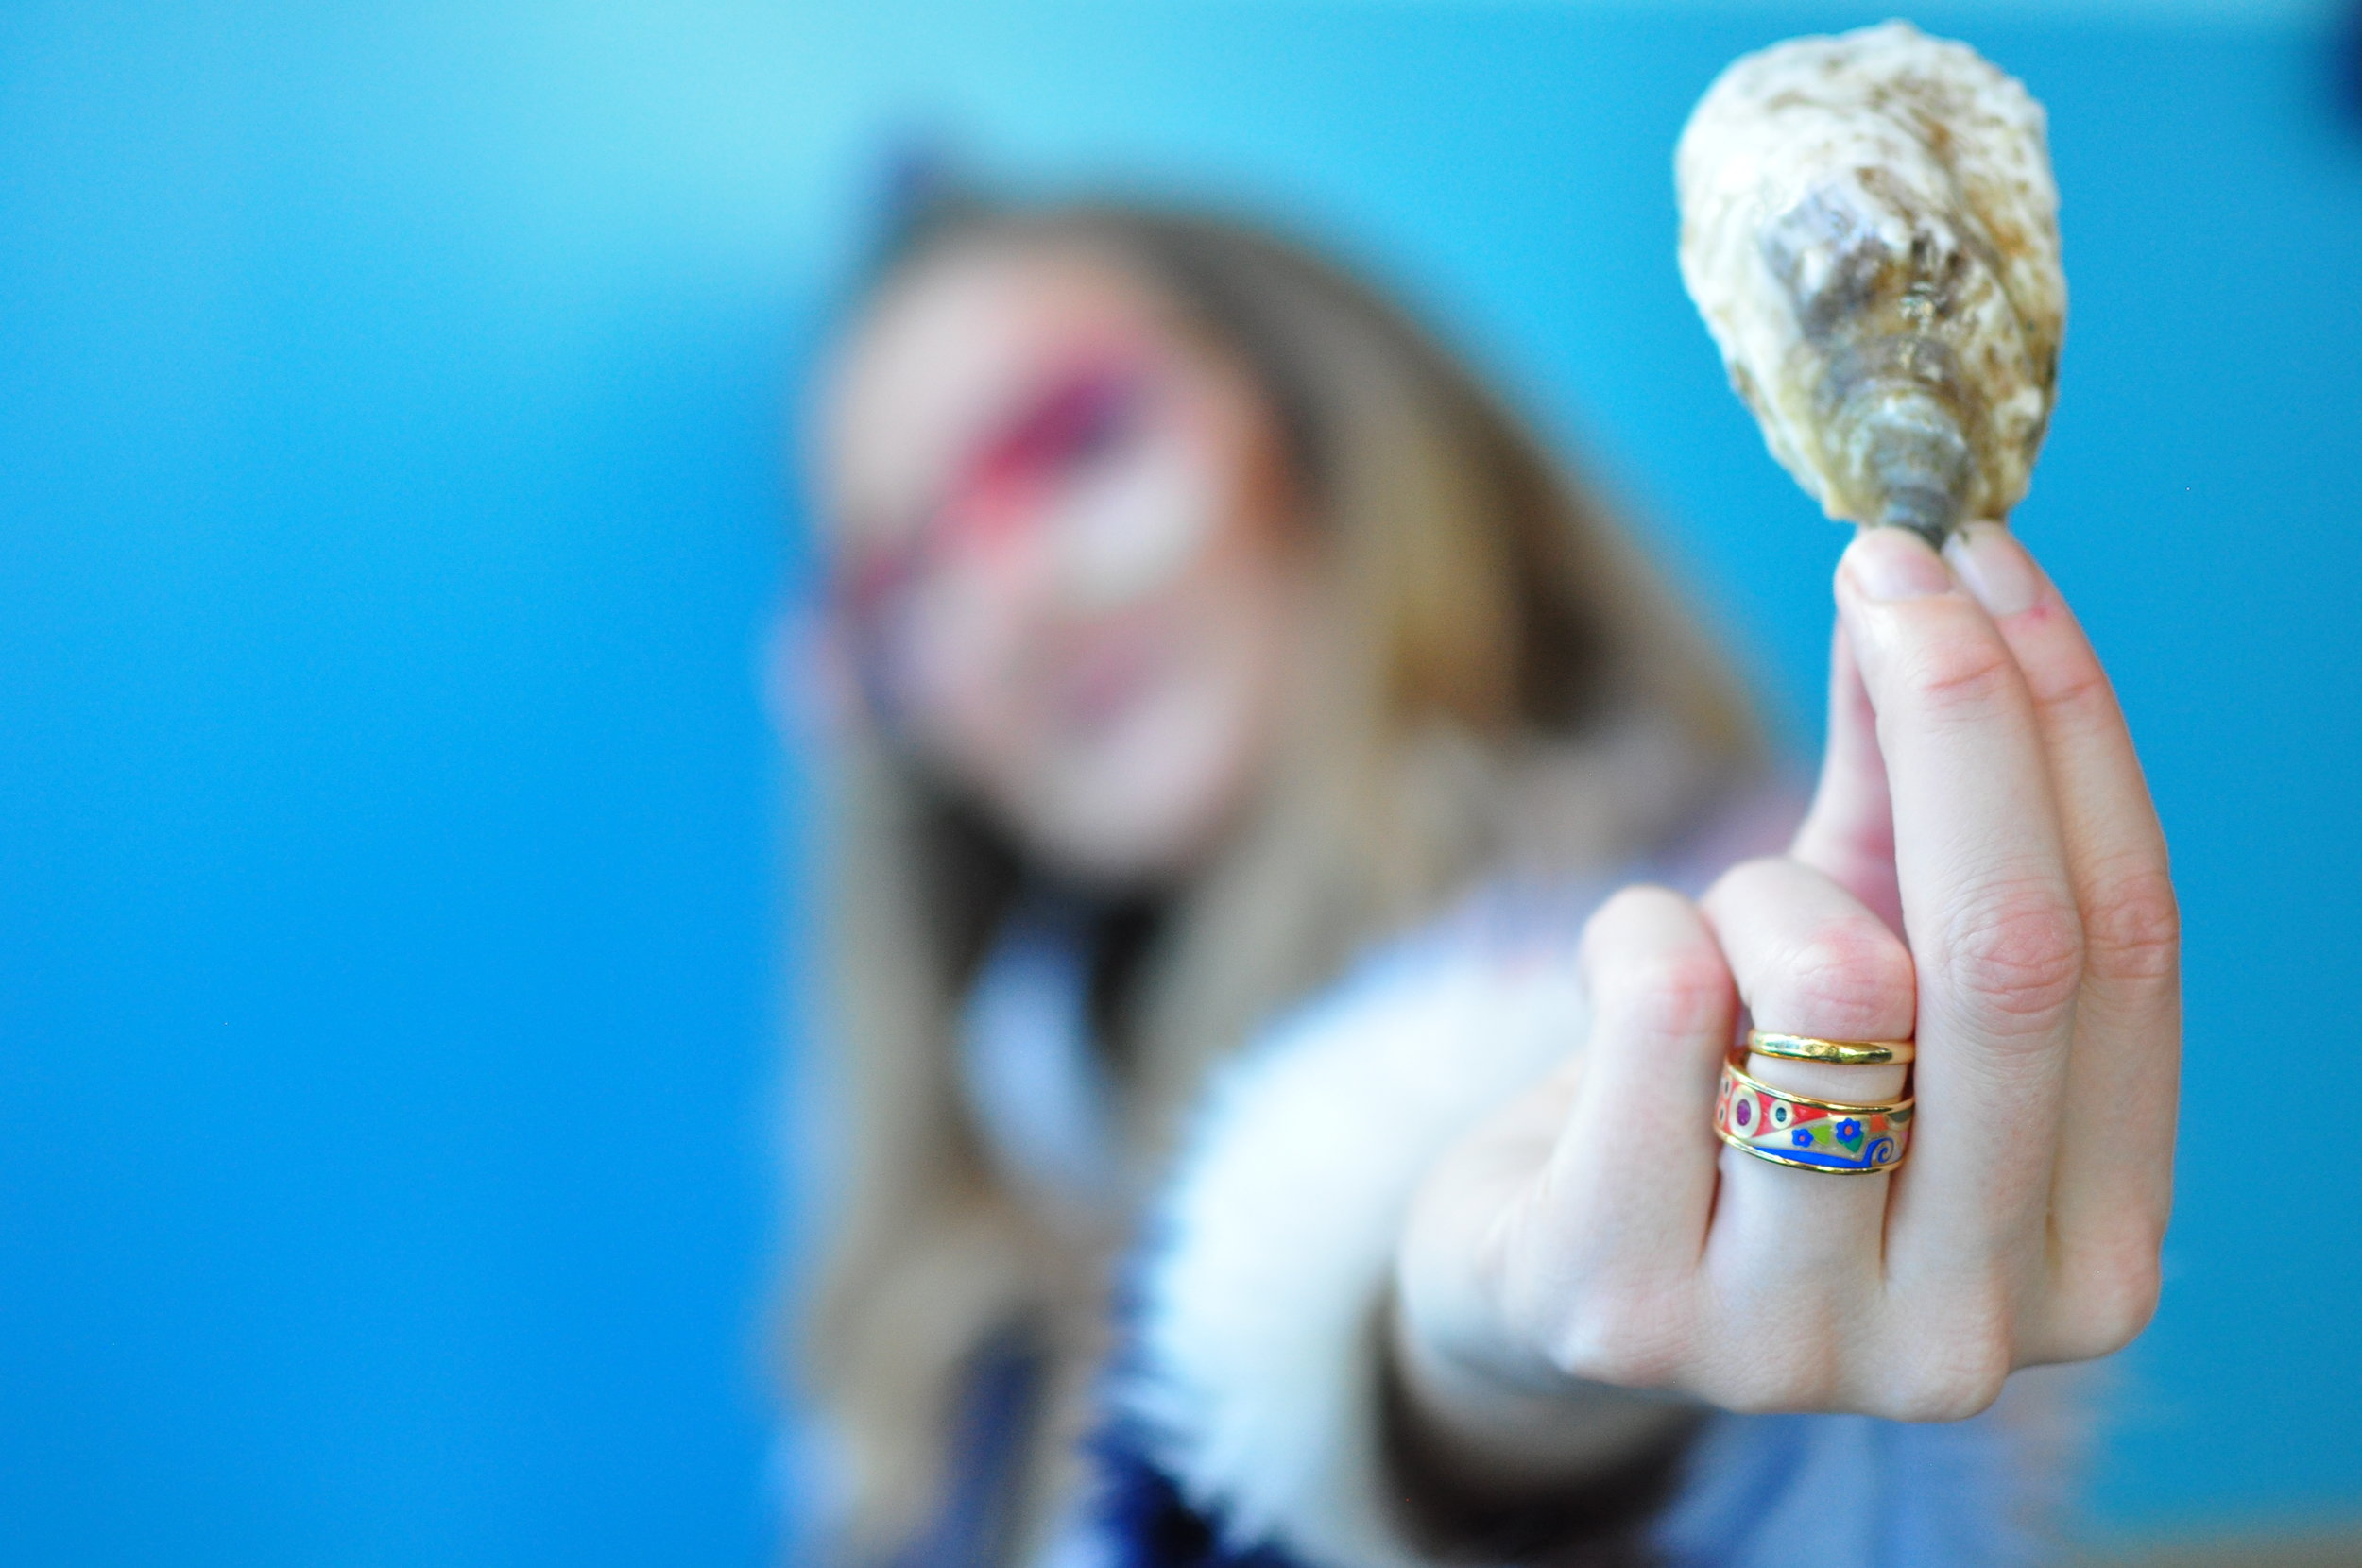 Rock on, oyster love. Taken at EBO deep blue sea party. Photo cred: Warwick Ombler of Lady Oyster